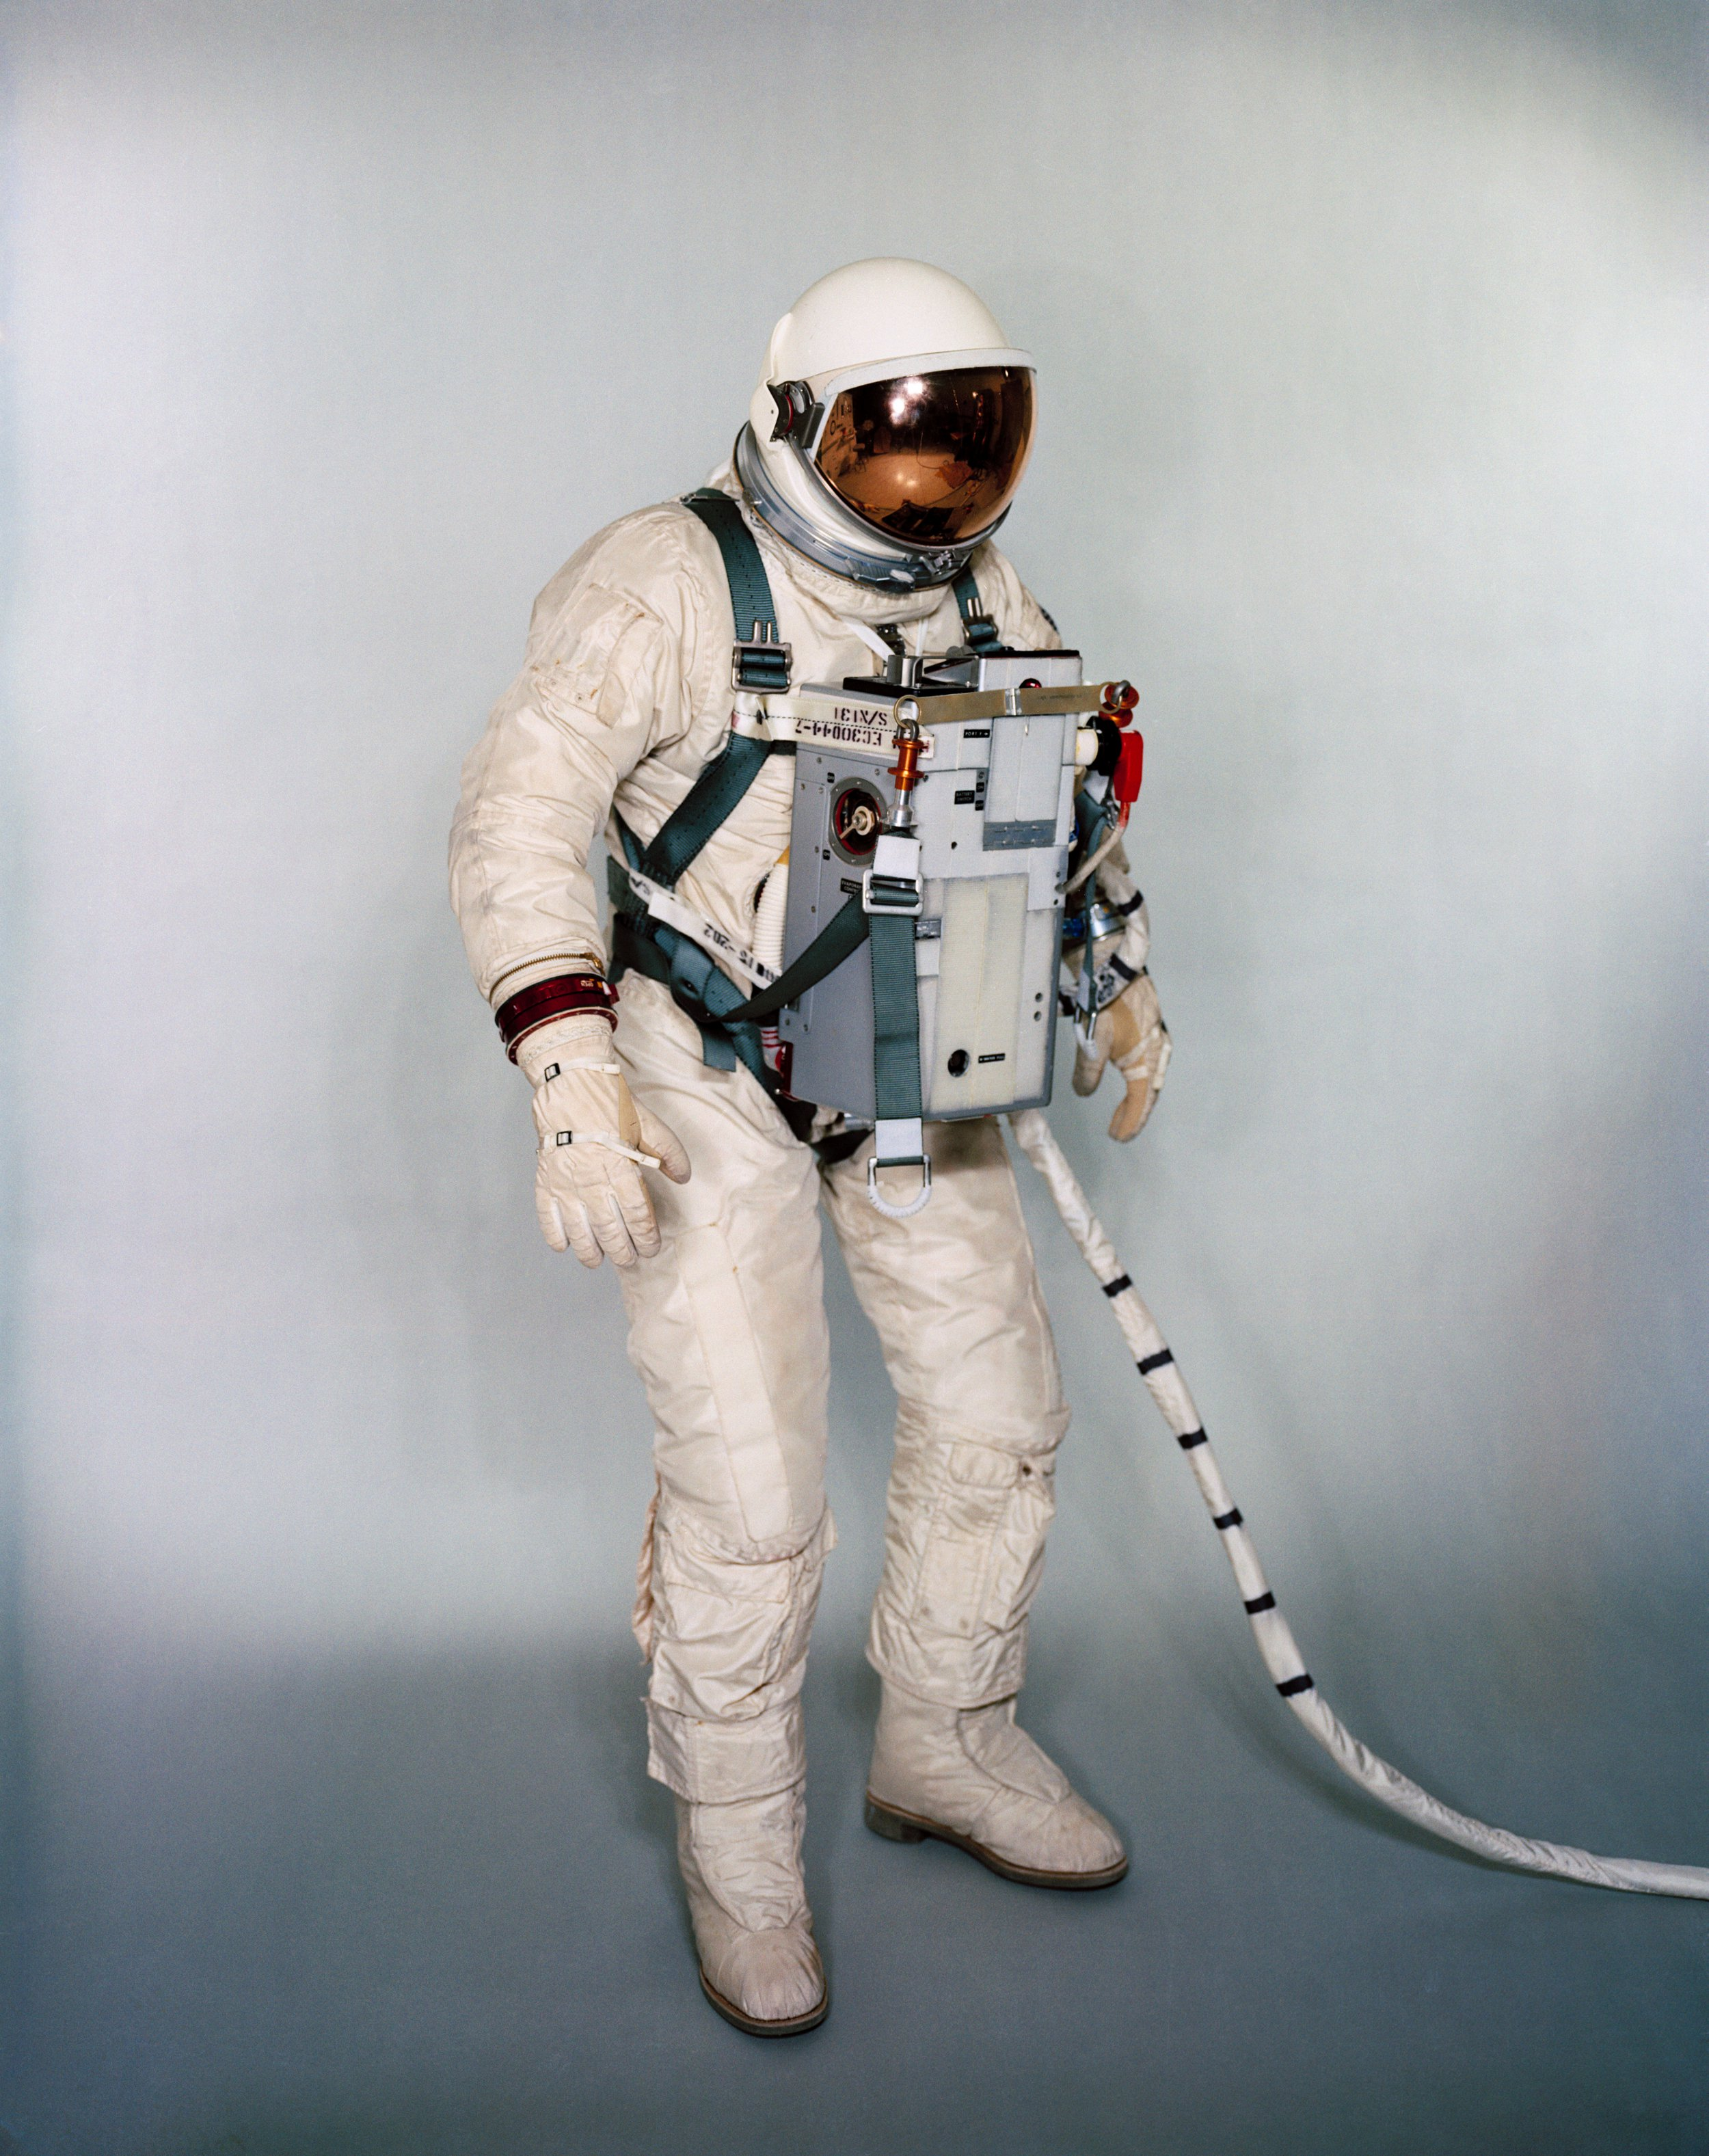 astronauts space suits cooling system - photo #38